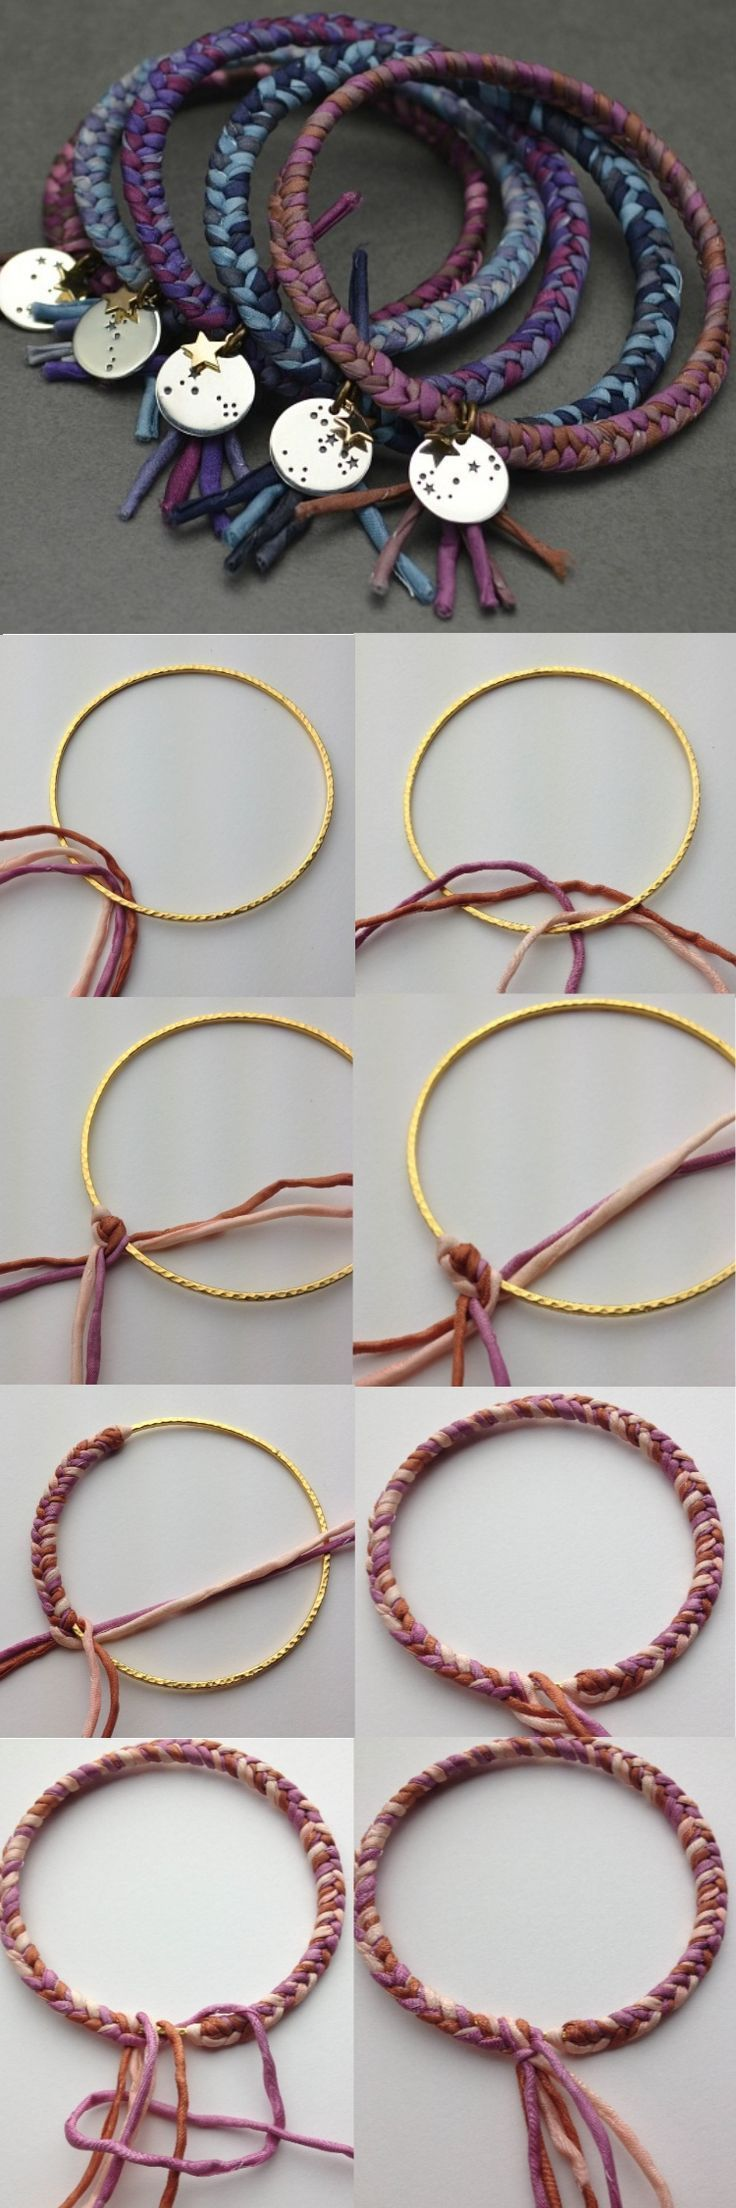 How to DIY:: Braided Bangles. Add your favorite charm to a colorful braided bangle and stack them for a boho look   http://www.ninadesigns.com/jewelry_design_ideas/constellation_cuffs.html: